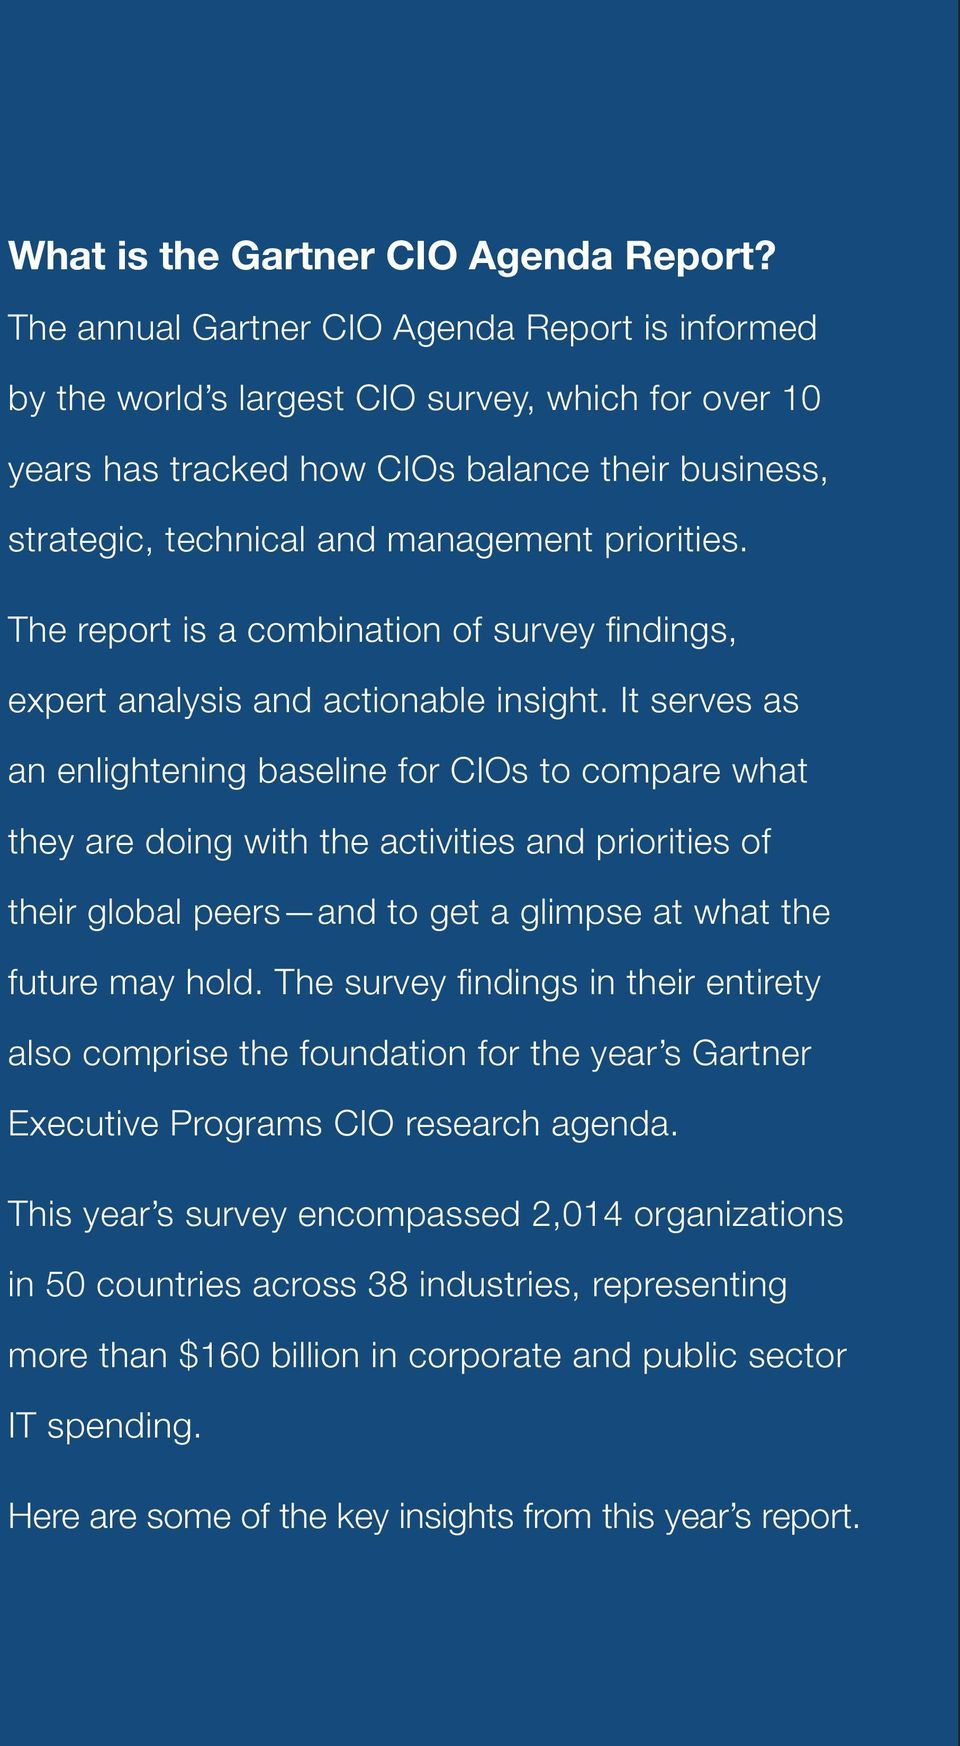 The report is a combination of survey findings, expert analysis and actionable insight.